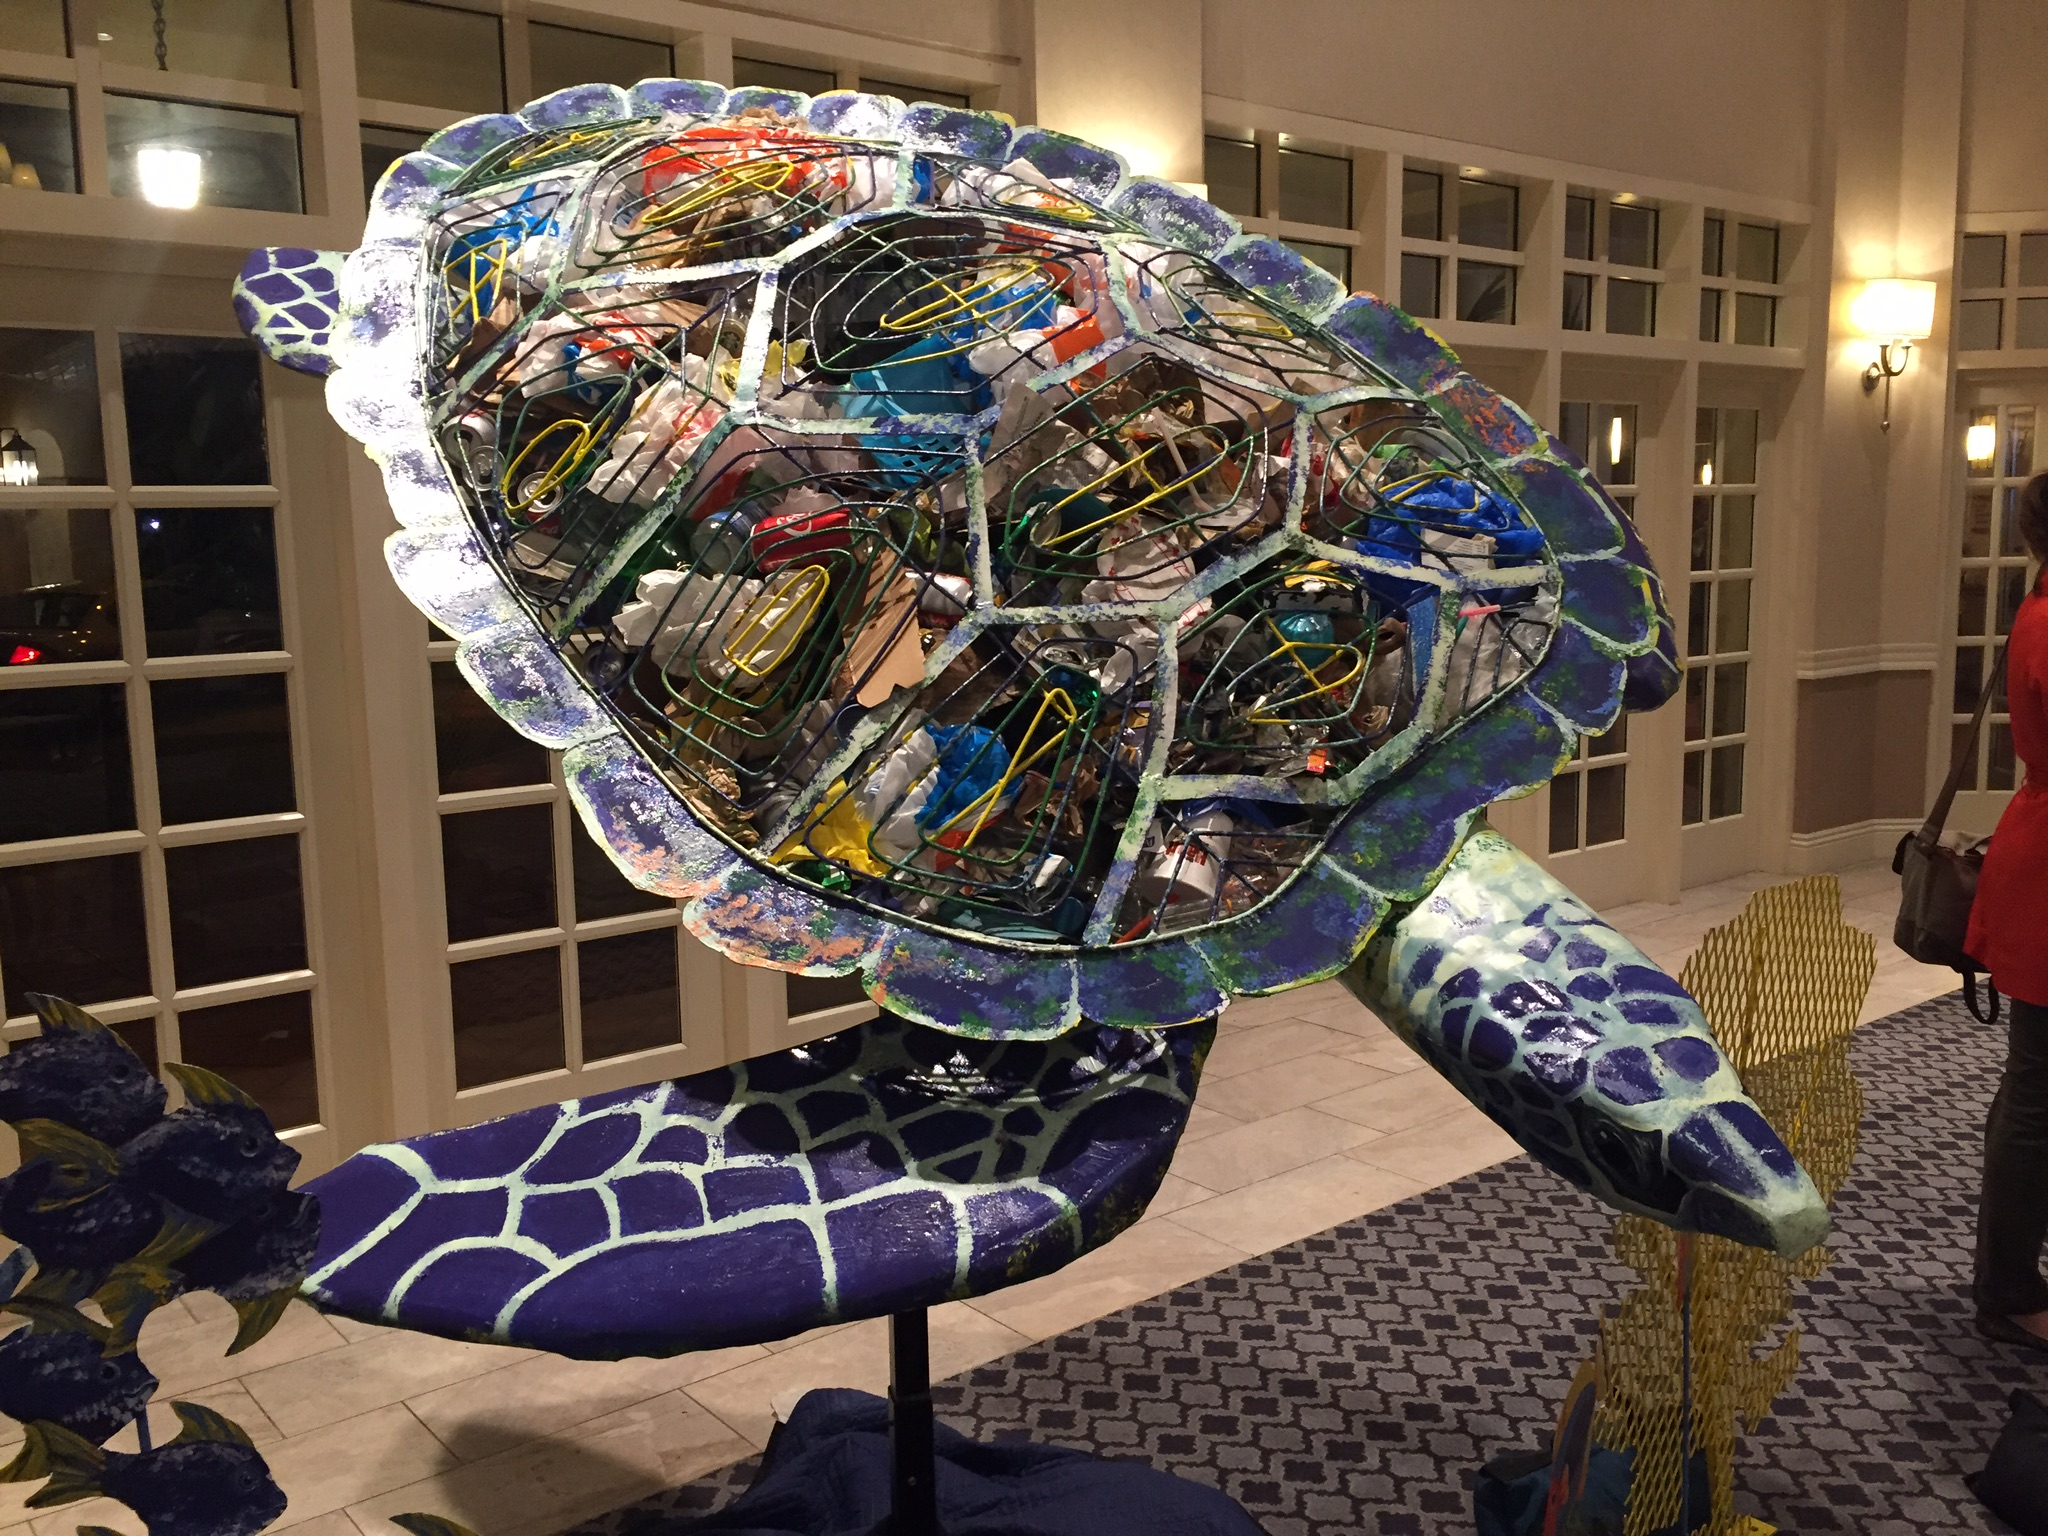 SEA TURTLE - International Marine Debris Conference, San Diego, CA . Commissioned by NOAA and the United Nations 2018